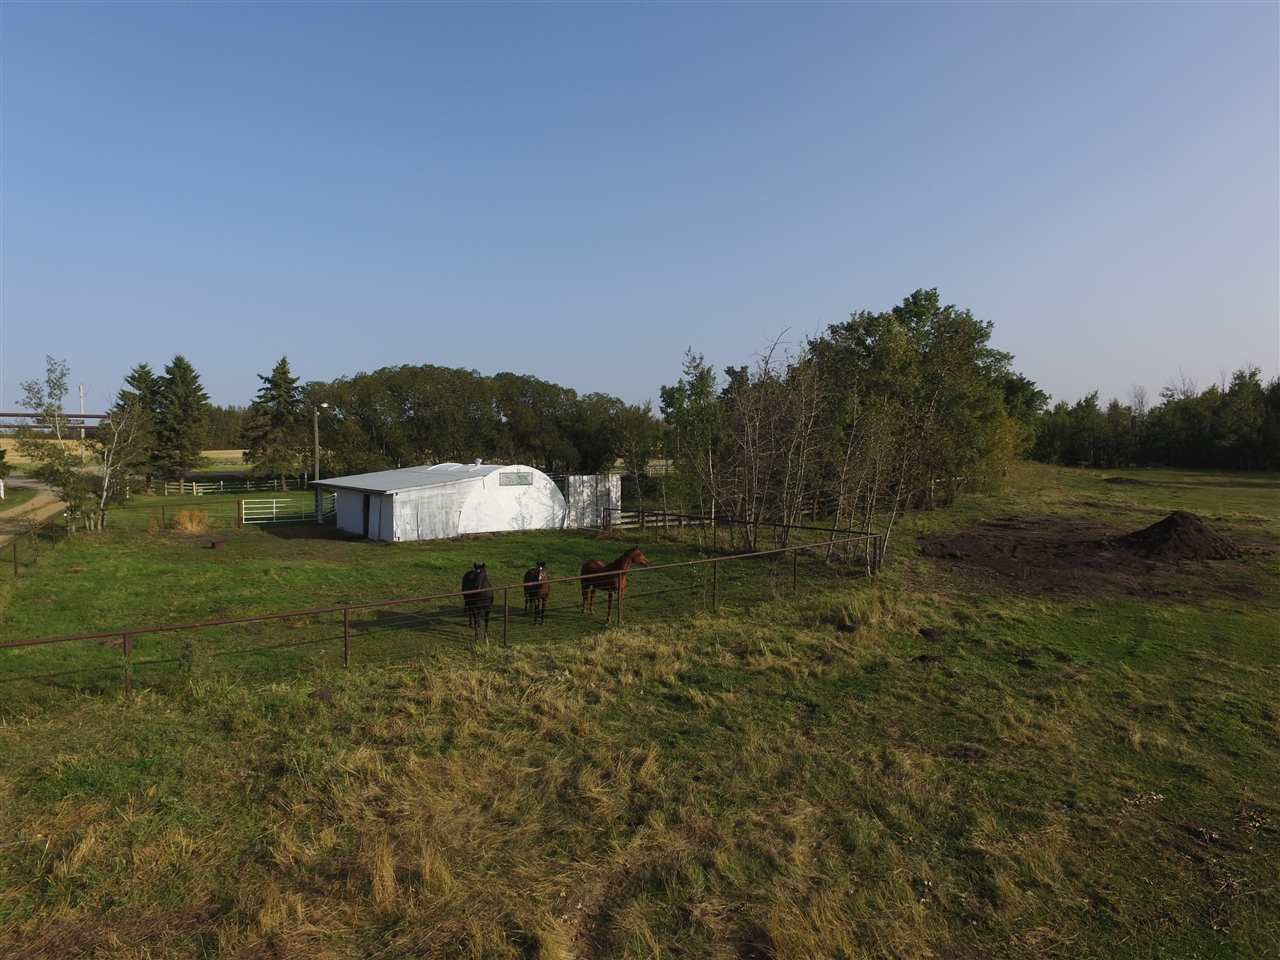 Photo 14: Photos: 472050A Hwy 814: Rural Wetaskiwin County House for sale : MLS®# E4213442